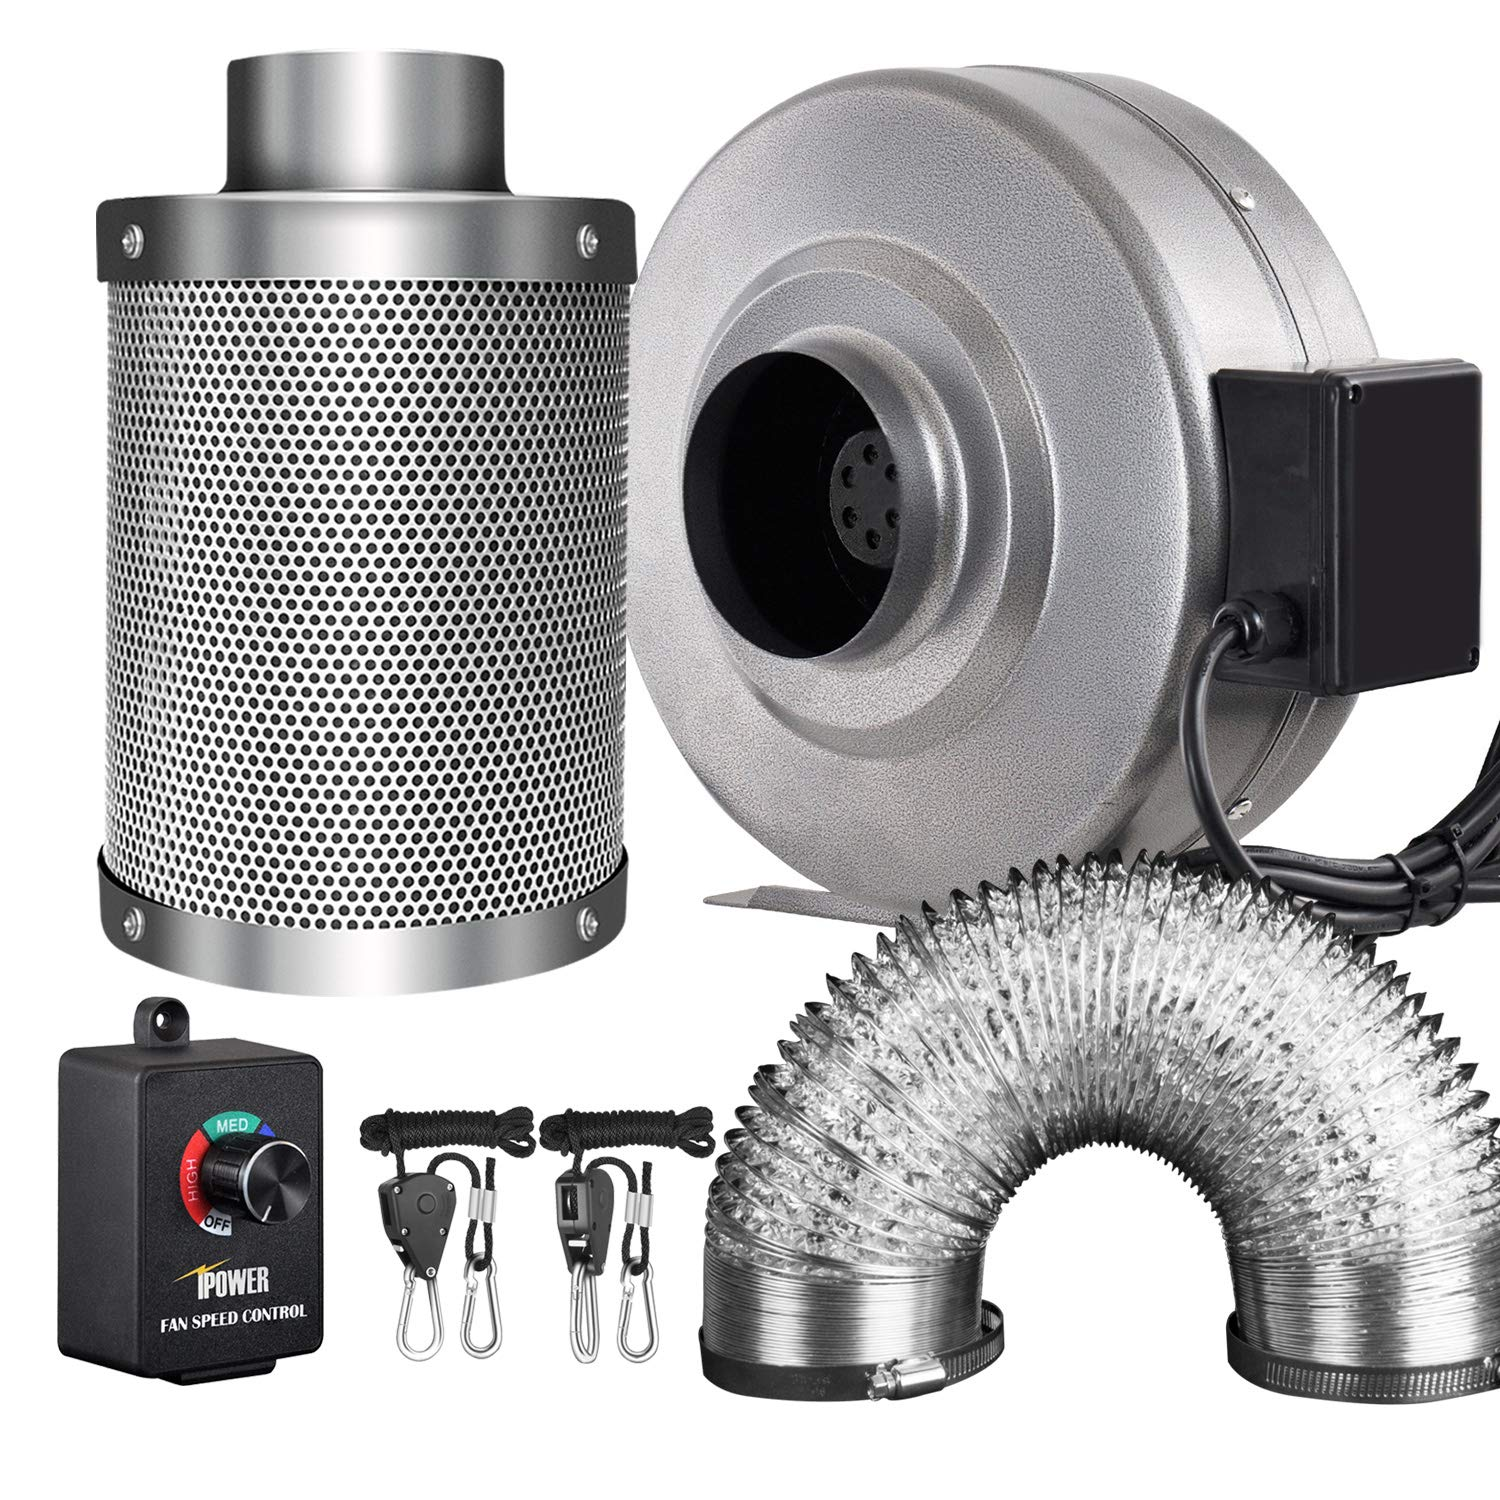 iPower 4 Inch 190 CFM Inline Fan Carbon Filter 8 Feet Ducting Combo with Variable Speed Controller and Rope Hanger for Grow Tent Ventilation